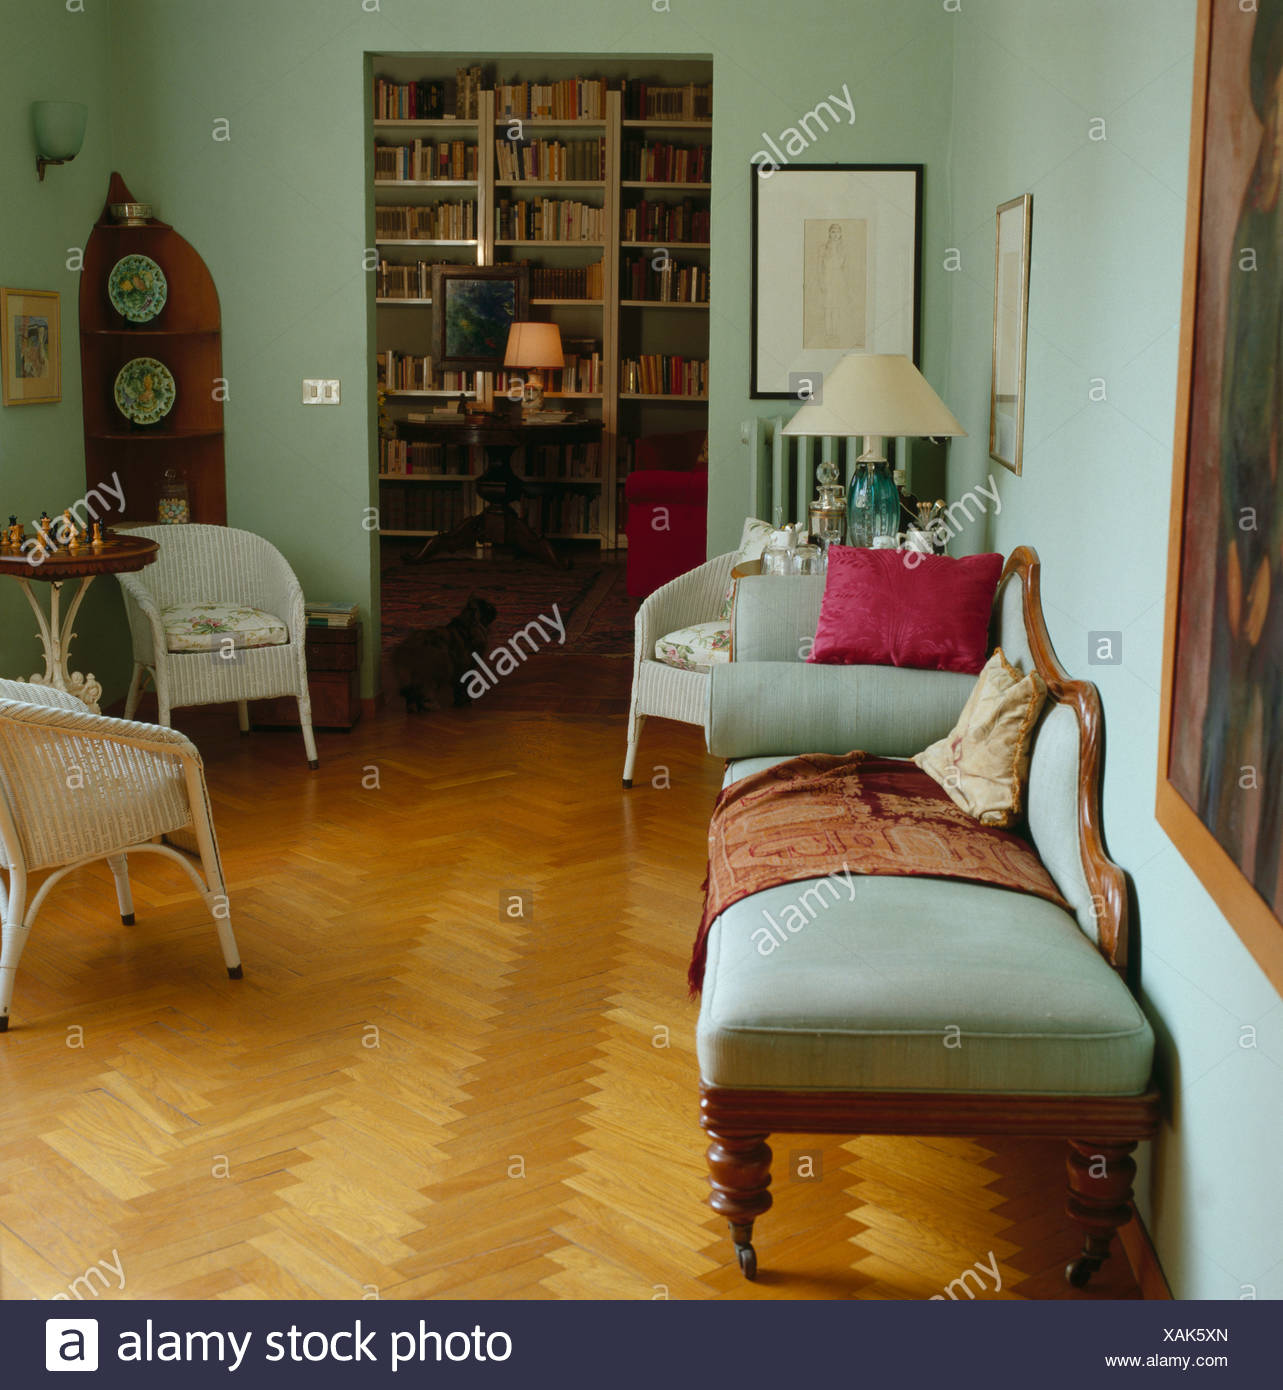 Parquet floor in pastel green living room with antique chaiselongue on antique daybed, antique commode, antique fountain, antique sofas, antique chaise couch, antique chalice, antique dresser, antique beds, antique egg, antique french country, antique recliner, antique glider, antique fabric, antique fainting couch, antique chair, antique books, antique chaise lounge, antique armchairs, antique lighting, antique parasol,